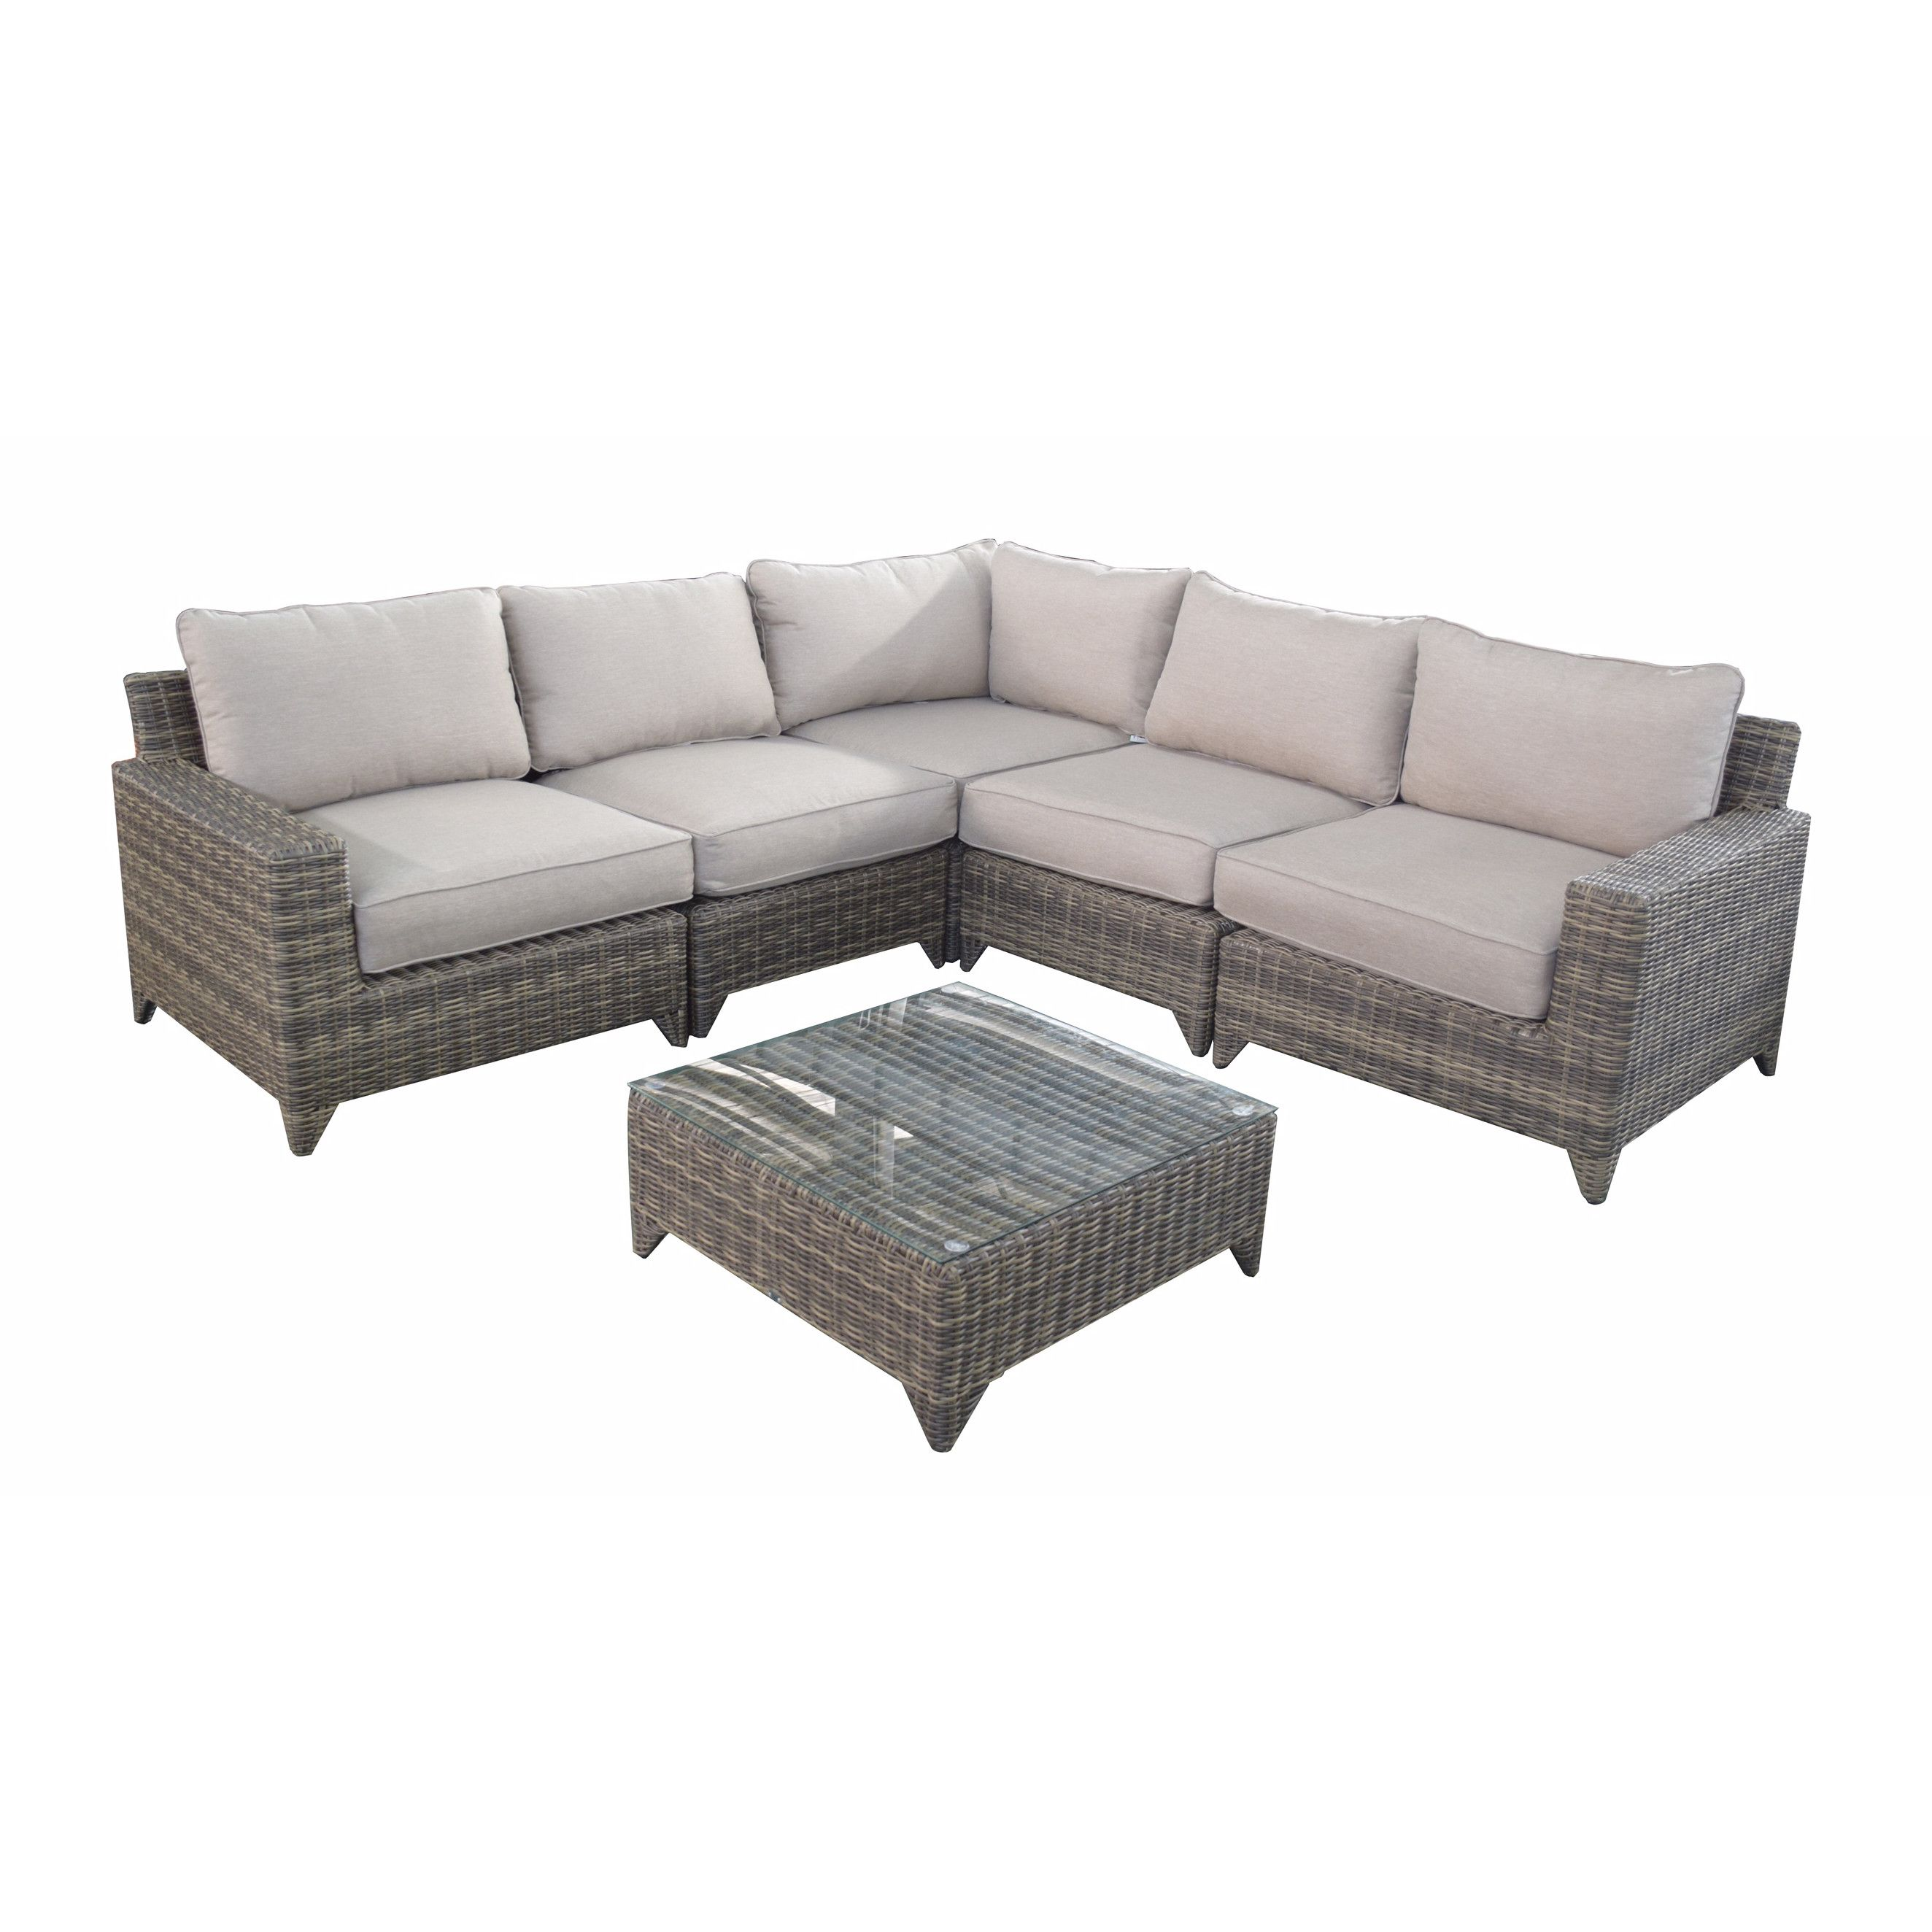 Hokku Designs Hayley Sectional Sofa with Cushions  sc 1 st  Pinterest : hokku sectional - Sectionals, Sofas & Couches